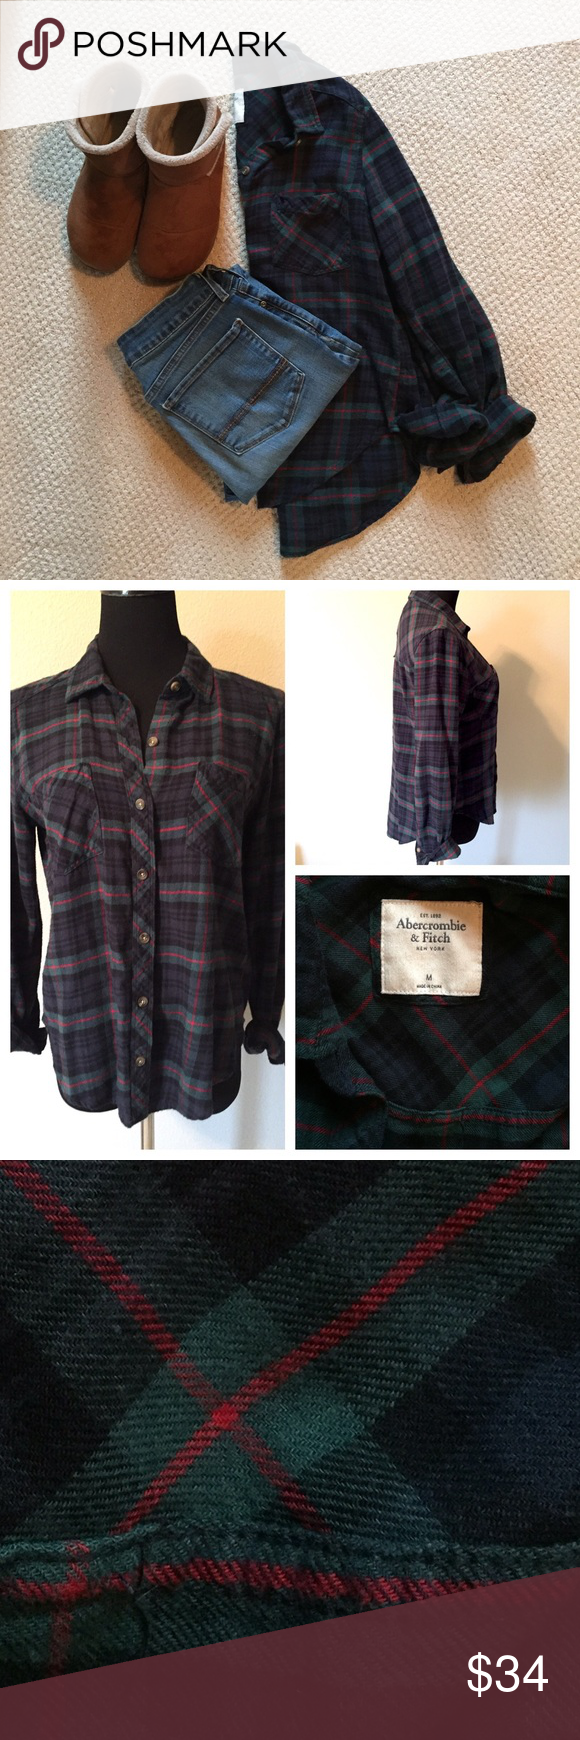 Flannel shirt black  Great flannel shirt Greenblack with red stripes  My Posh Picks